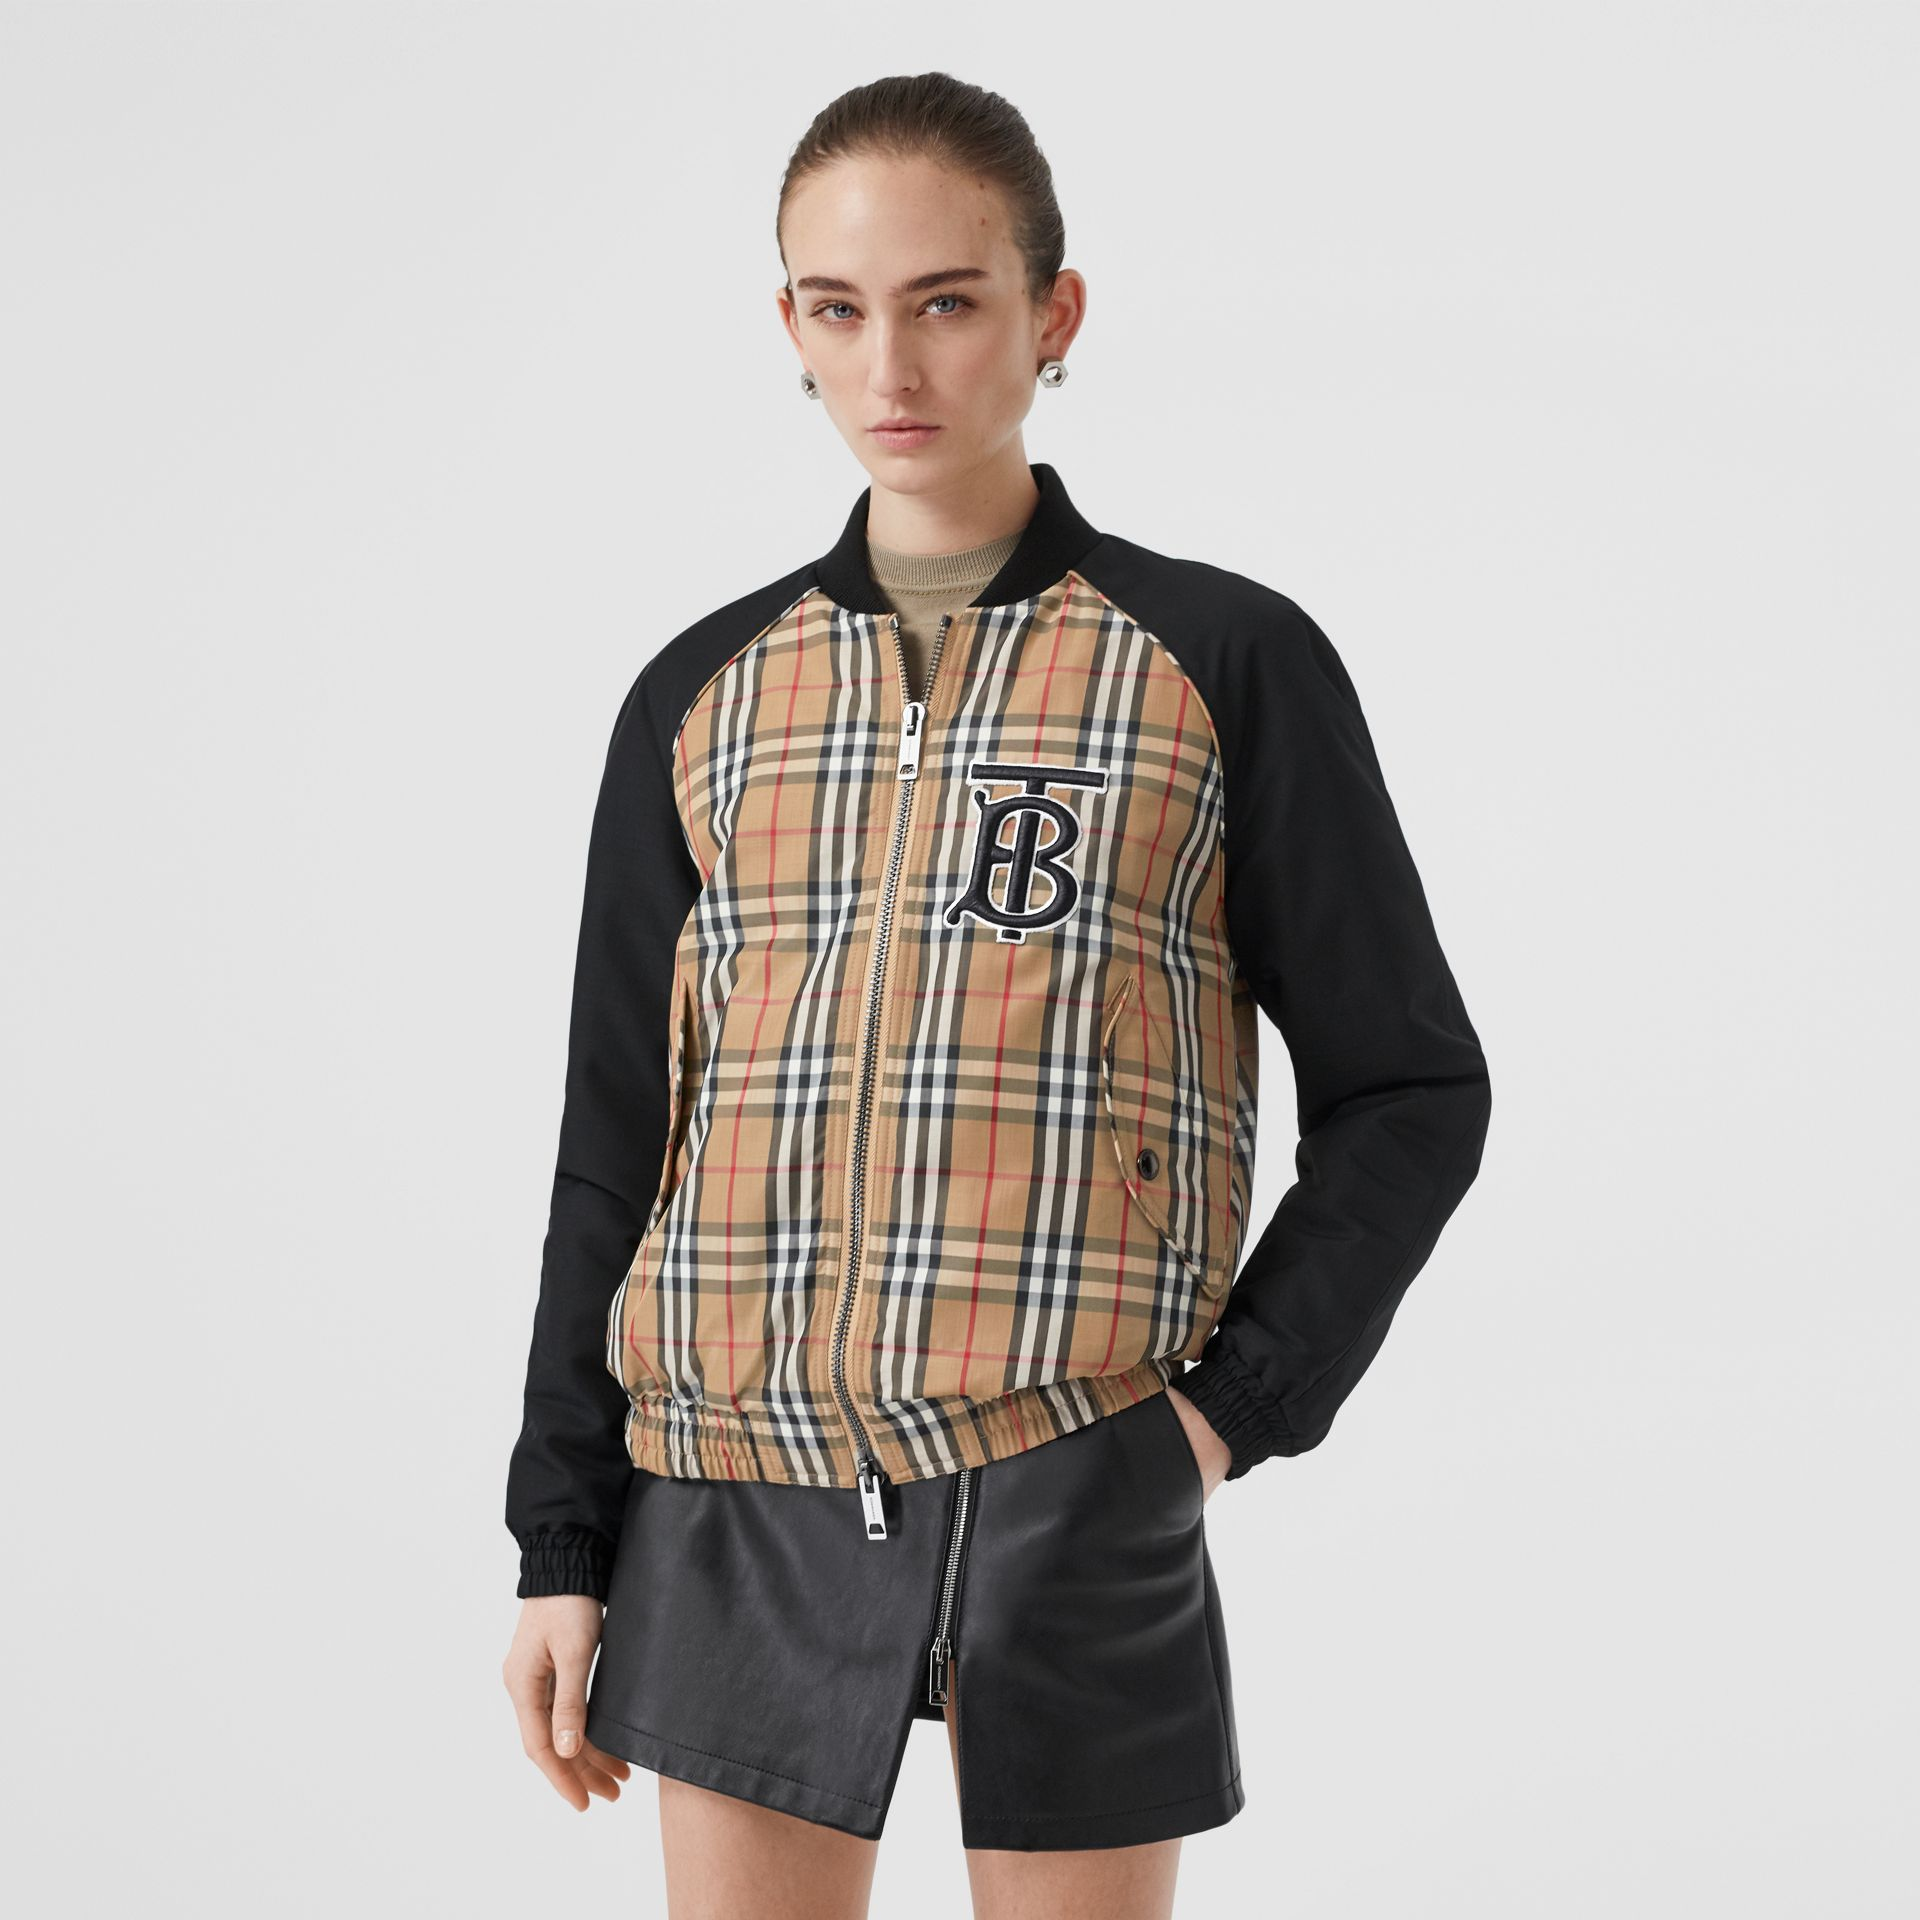 Monogram Motif Vintage Check Bomber Jacket in Black - Women | Burberry - gallery image 4